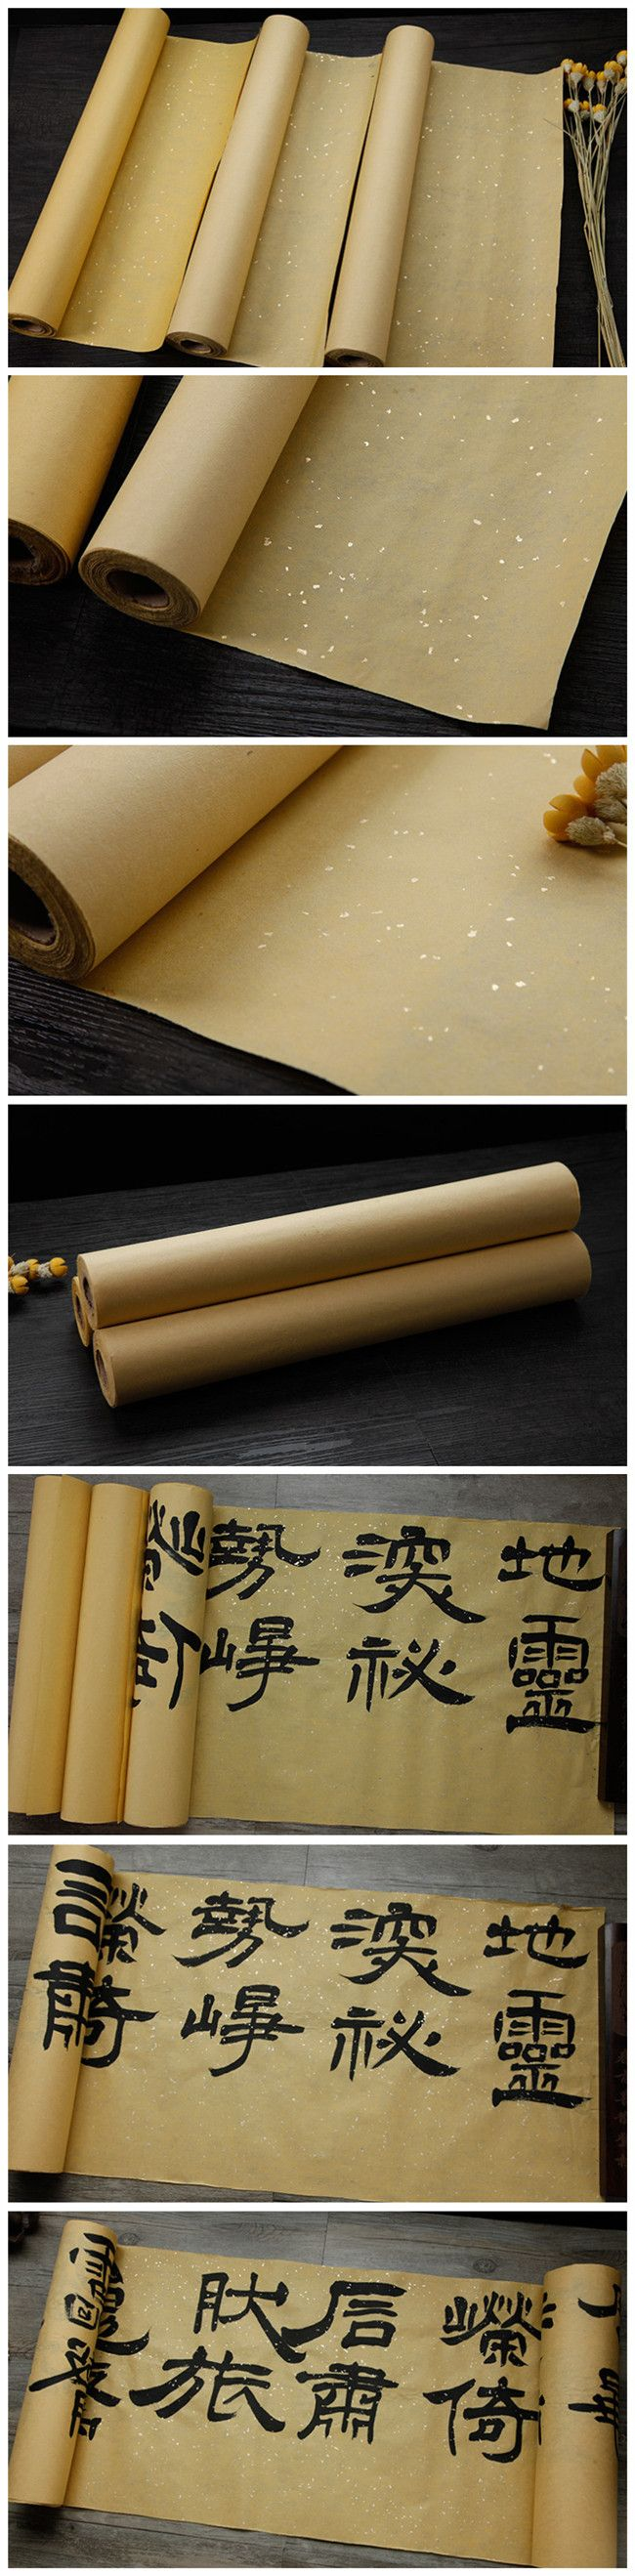 SJ015 Hmay Ancient paper Per Scroll [SJ015] - $19.99 : hmay rice paper manufacturer for calligraphy, brush painting&Chinese painting